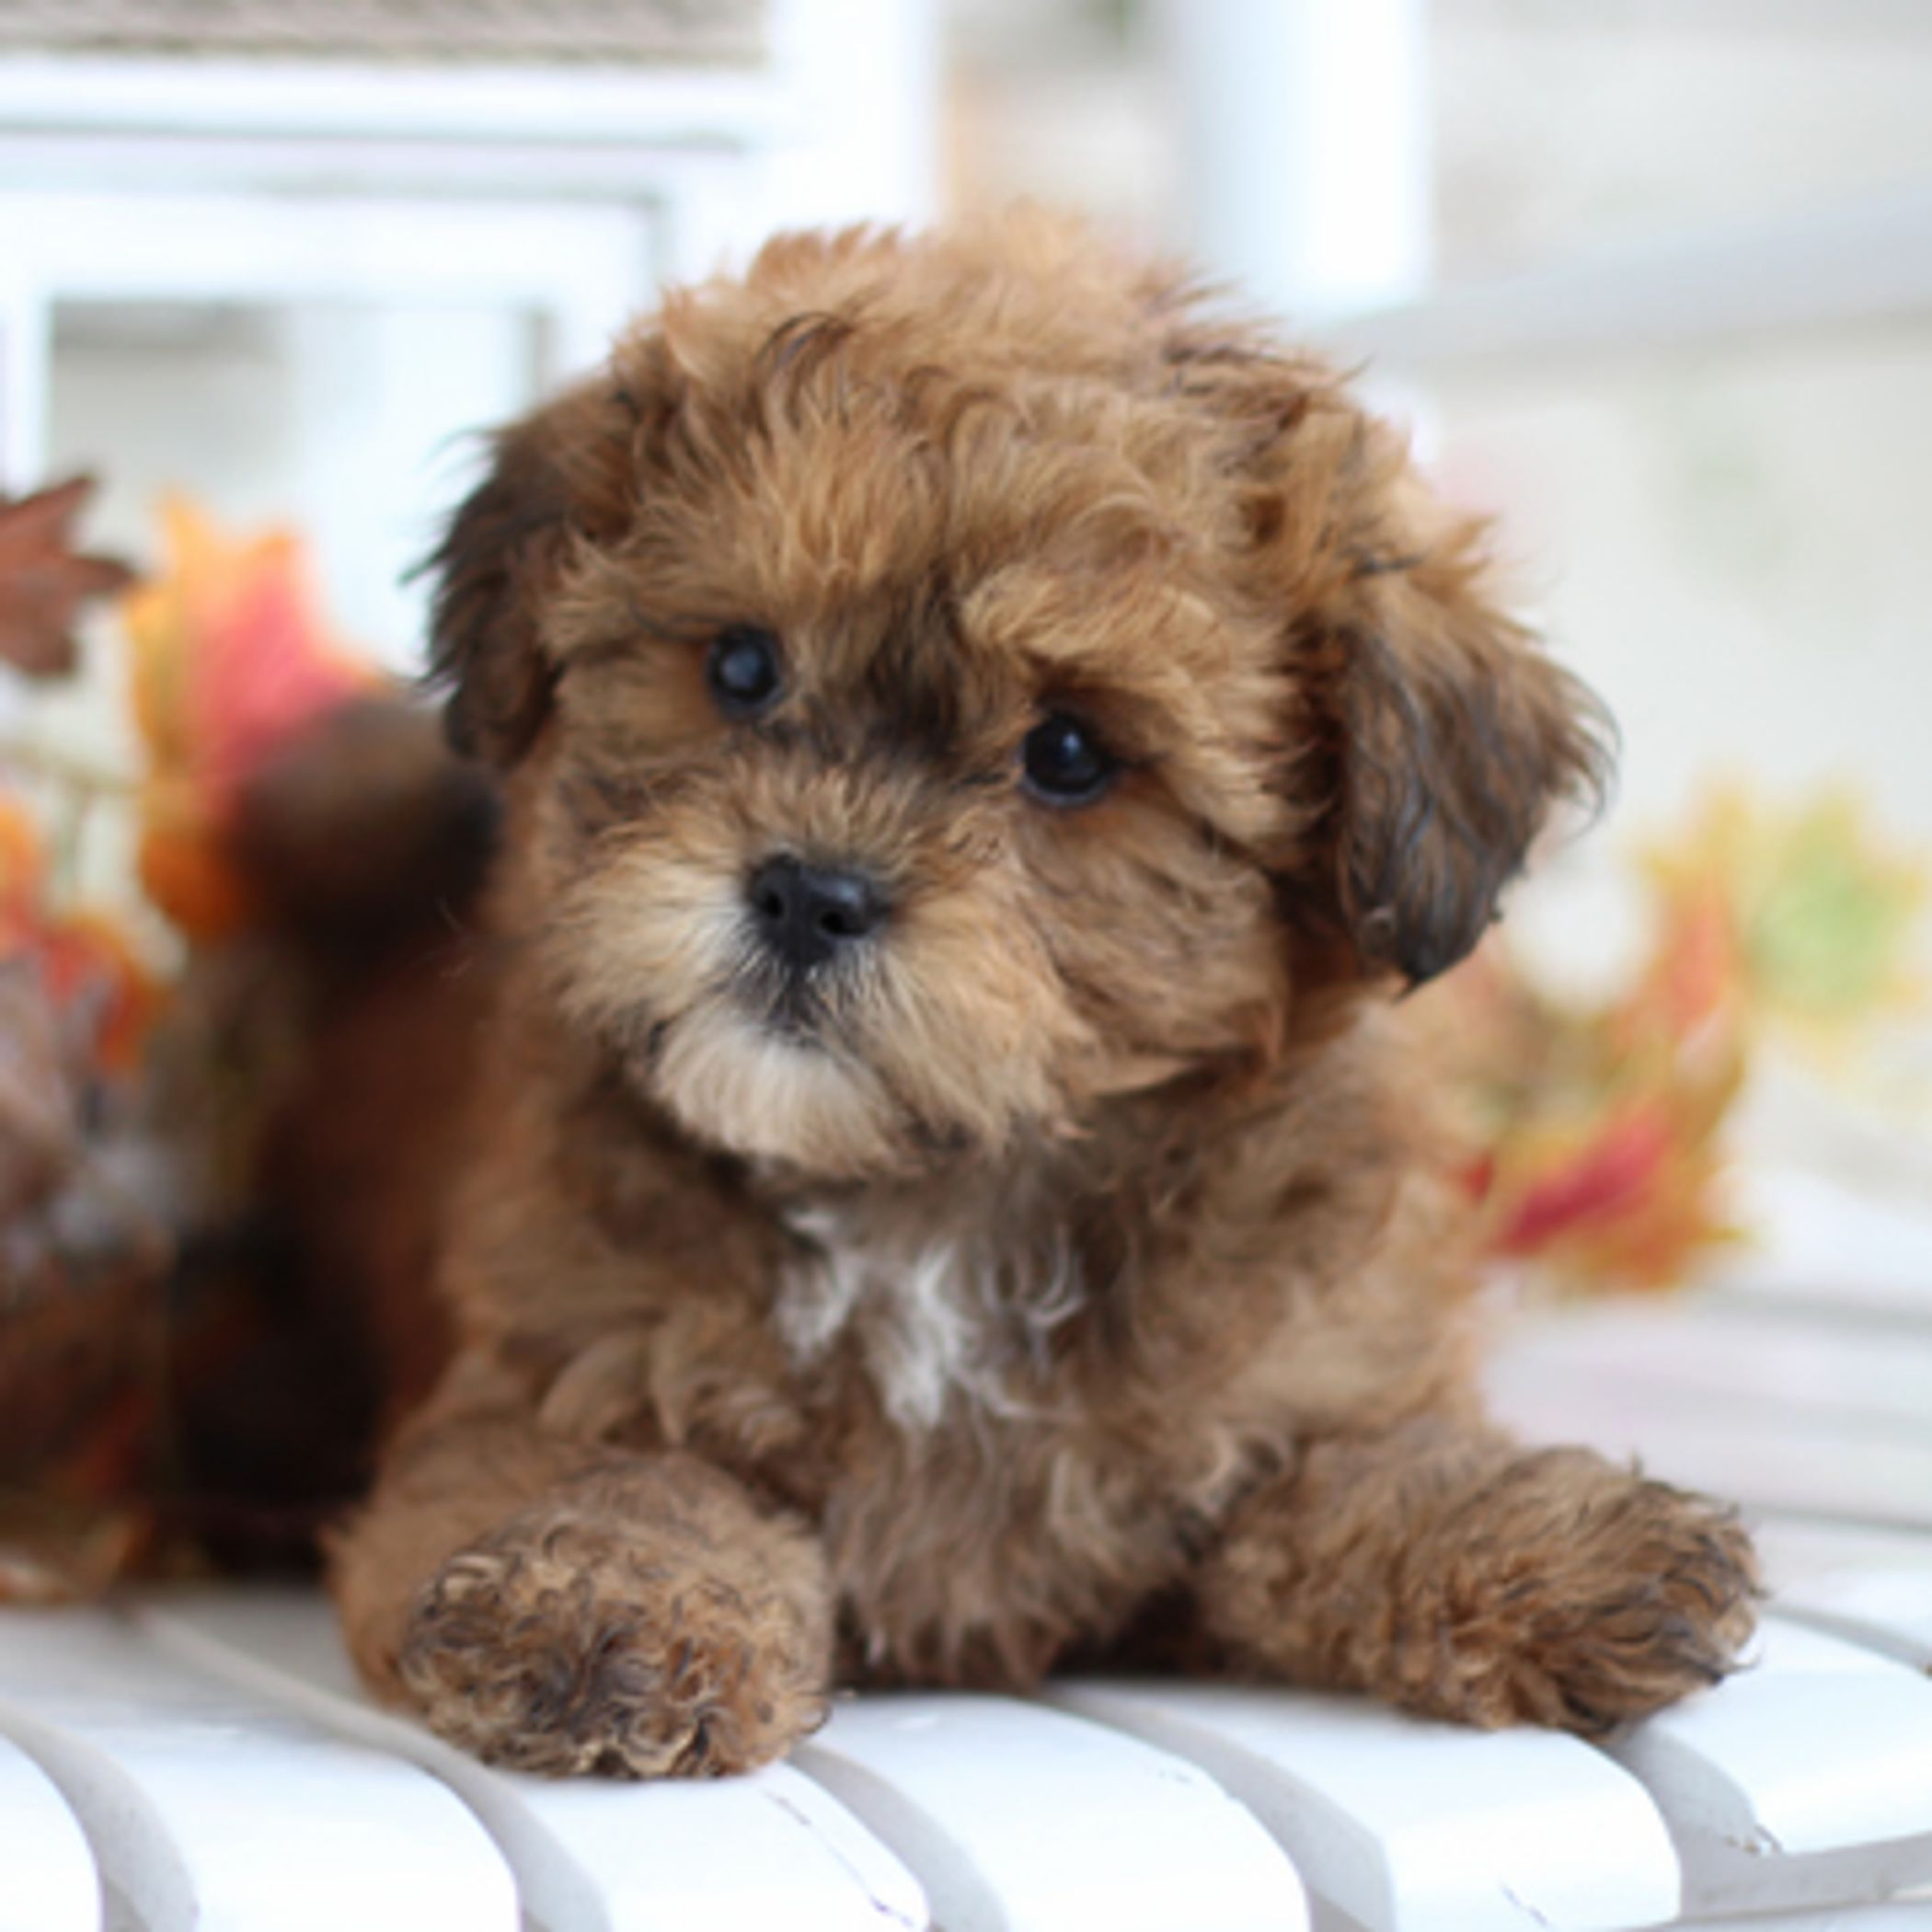 Home page for timbercreek puppiesshihpoo puppies for sale